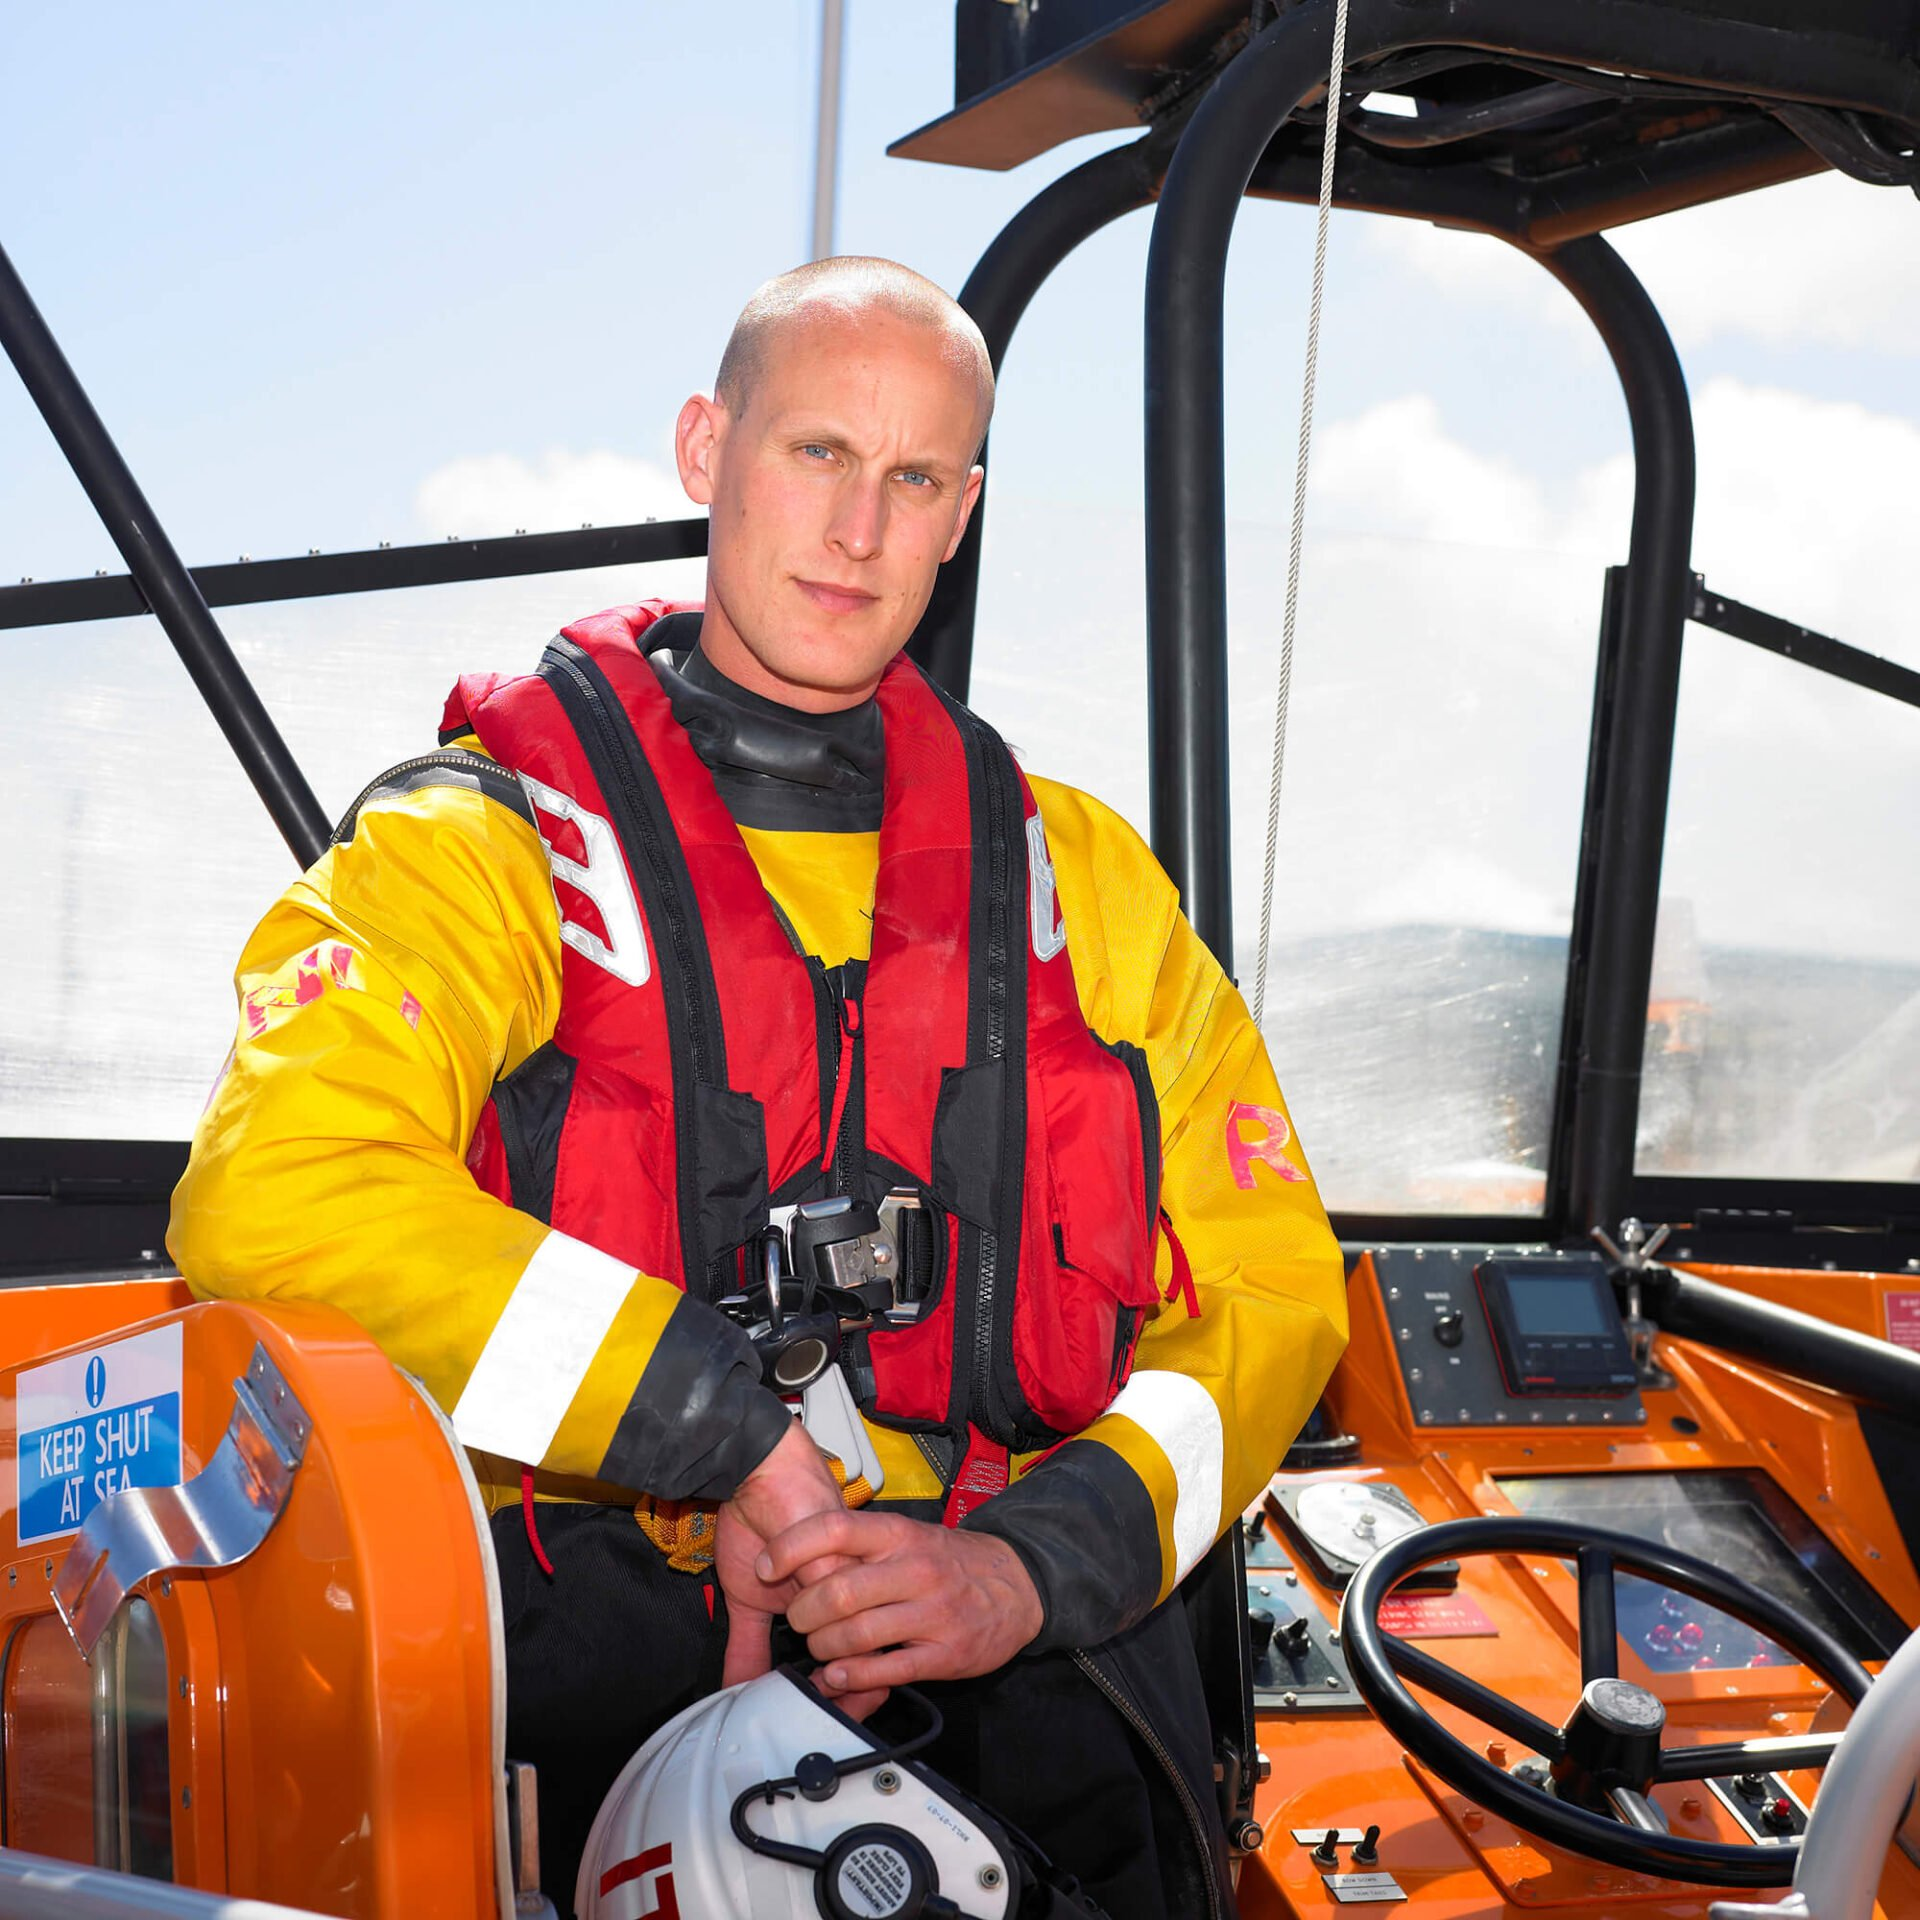 RNLI Poole PR Location Photography